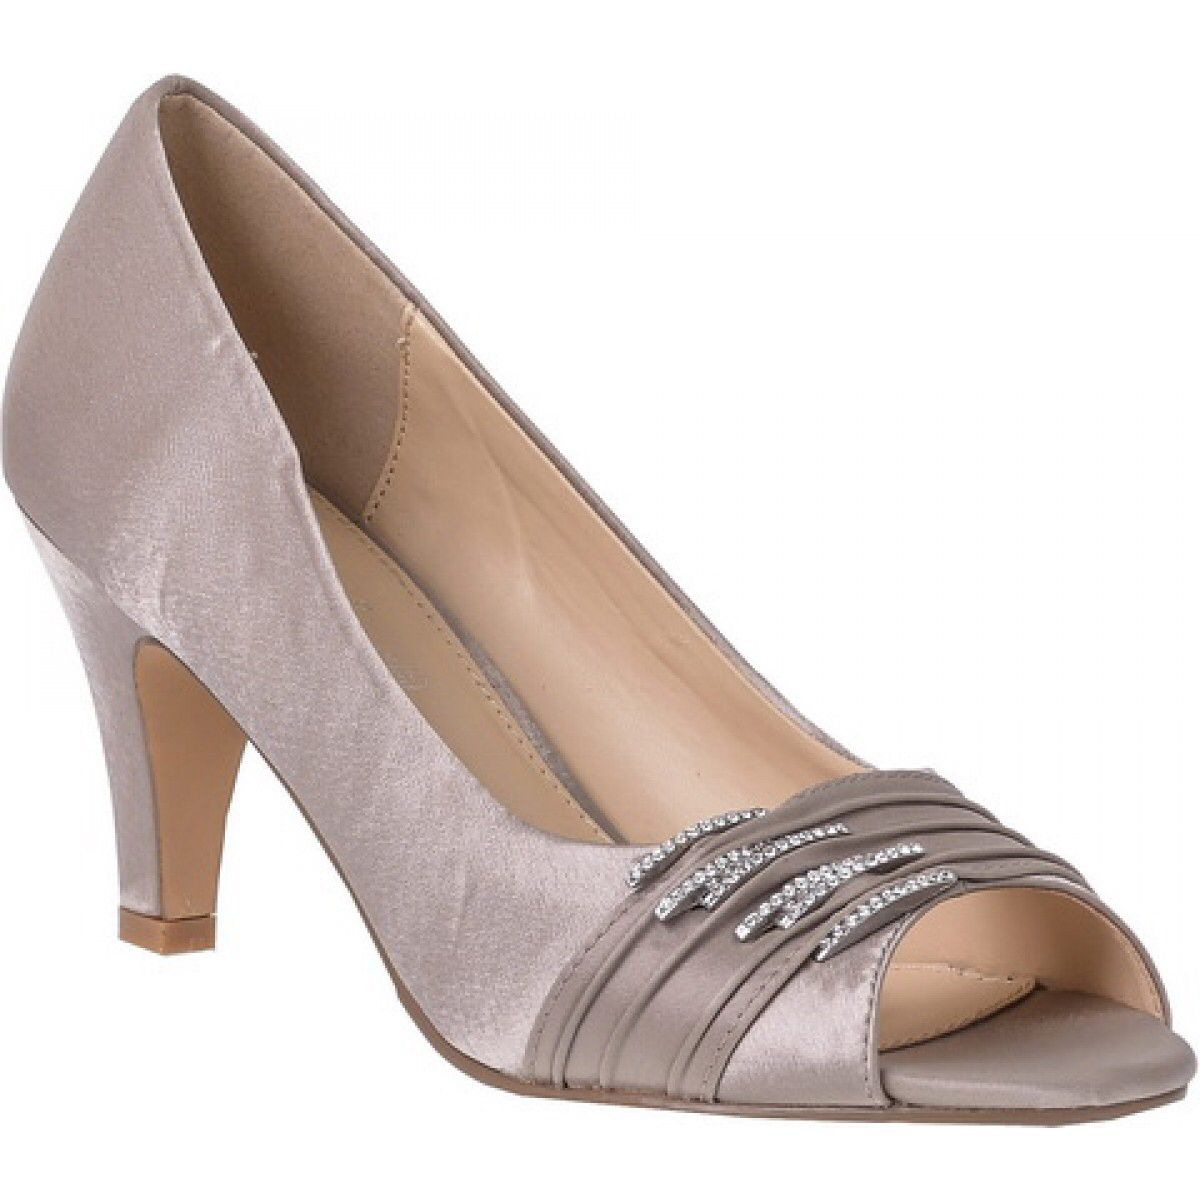 Taupe Occasion Mother Of The Bride Groom Shoes Mother Of The Groom Shoes Mother Of The Bride Shoes Groom Shoes